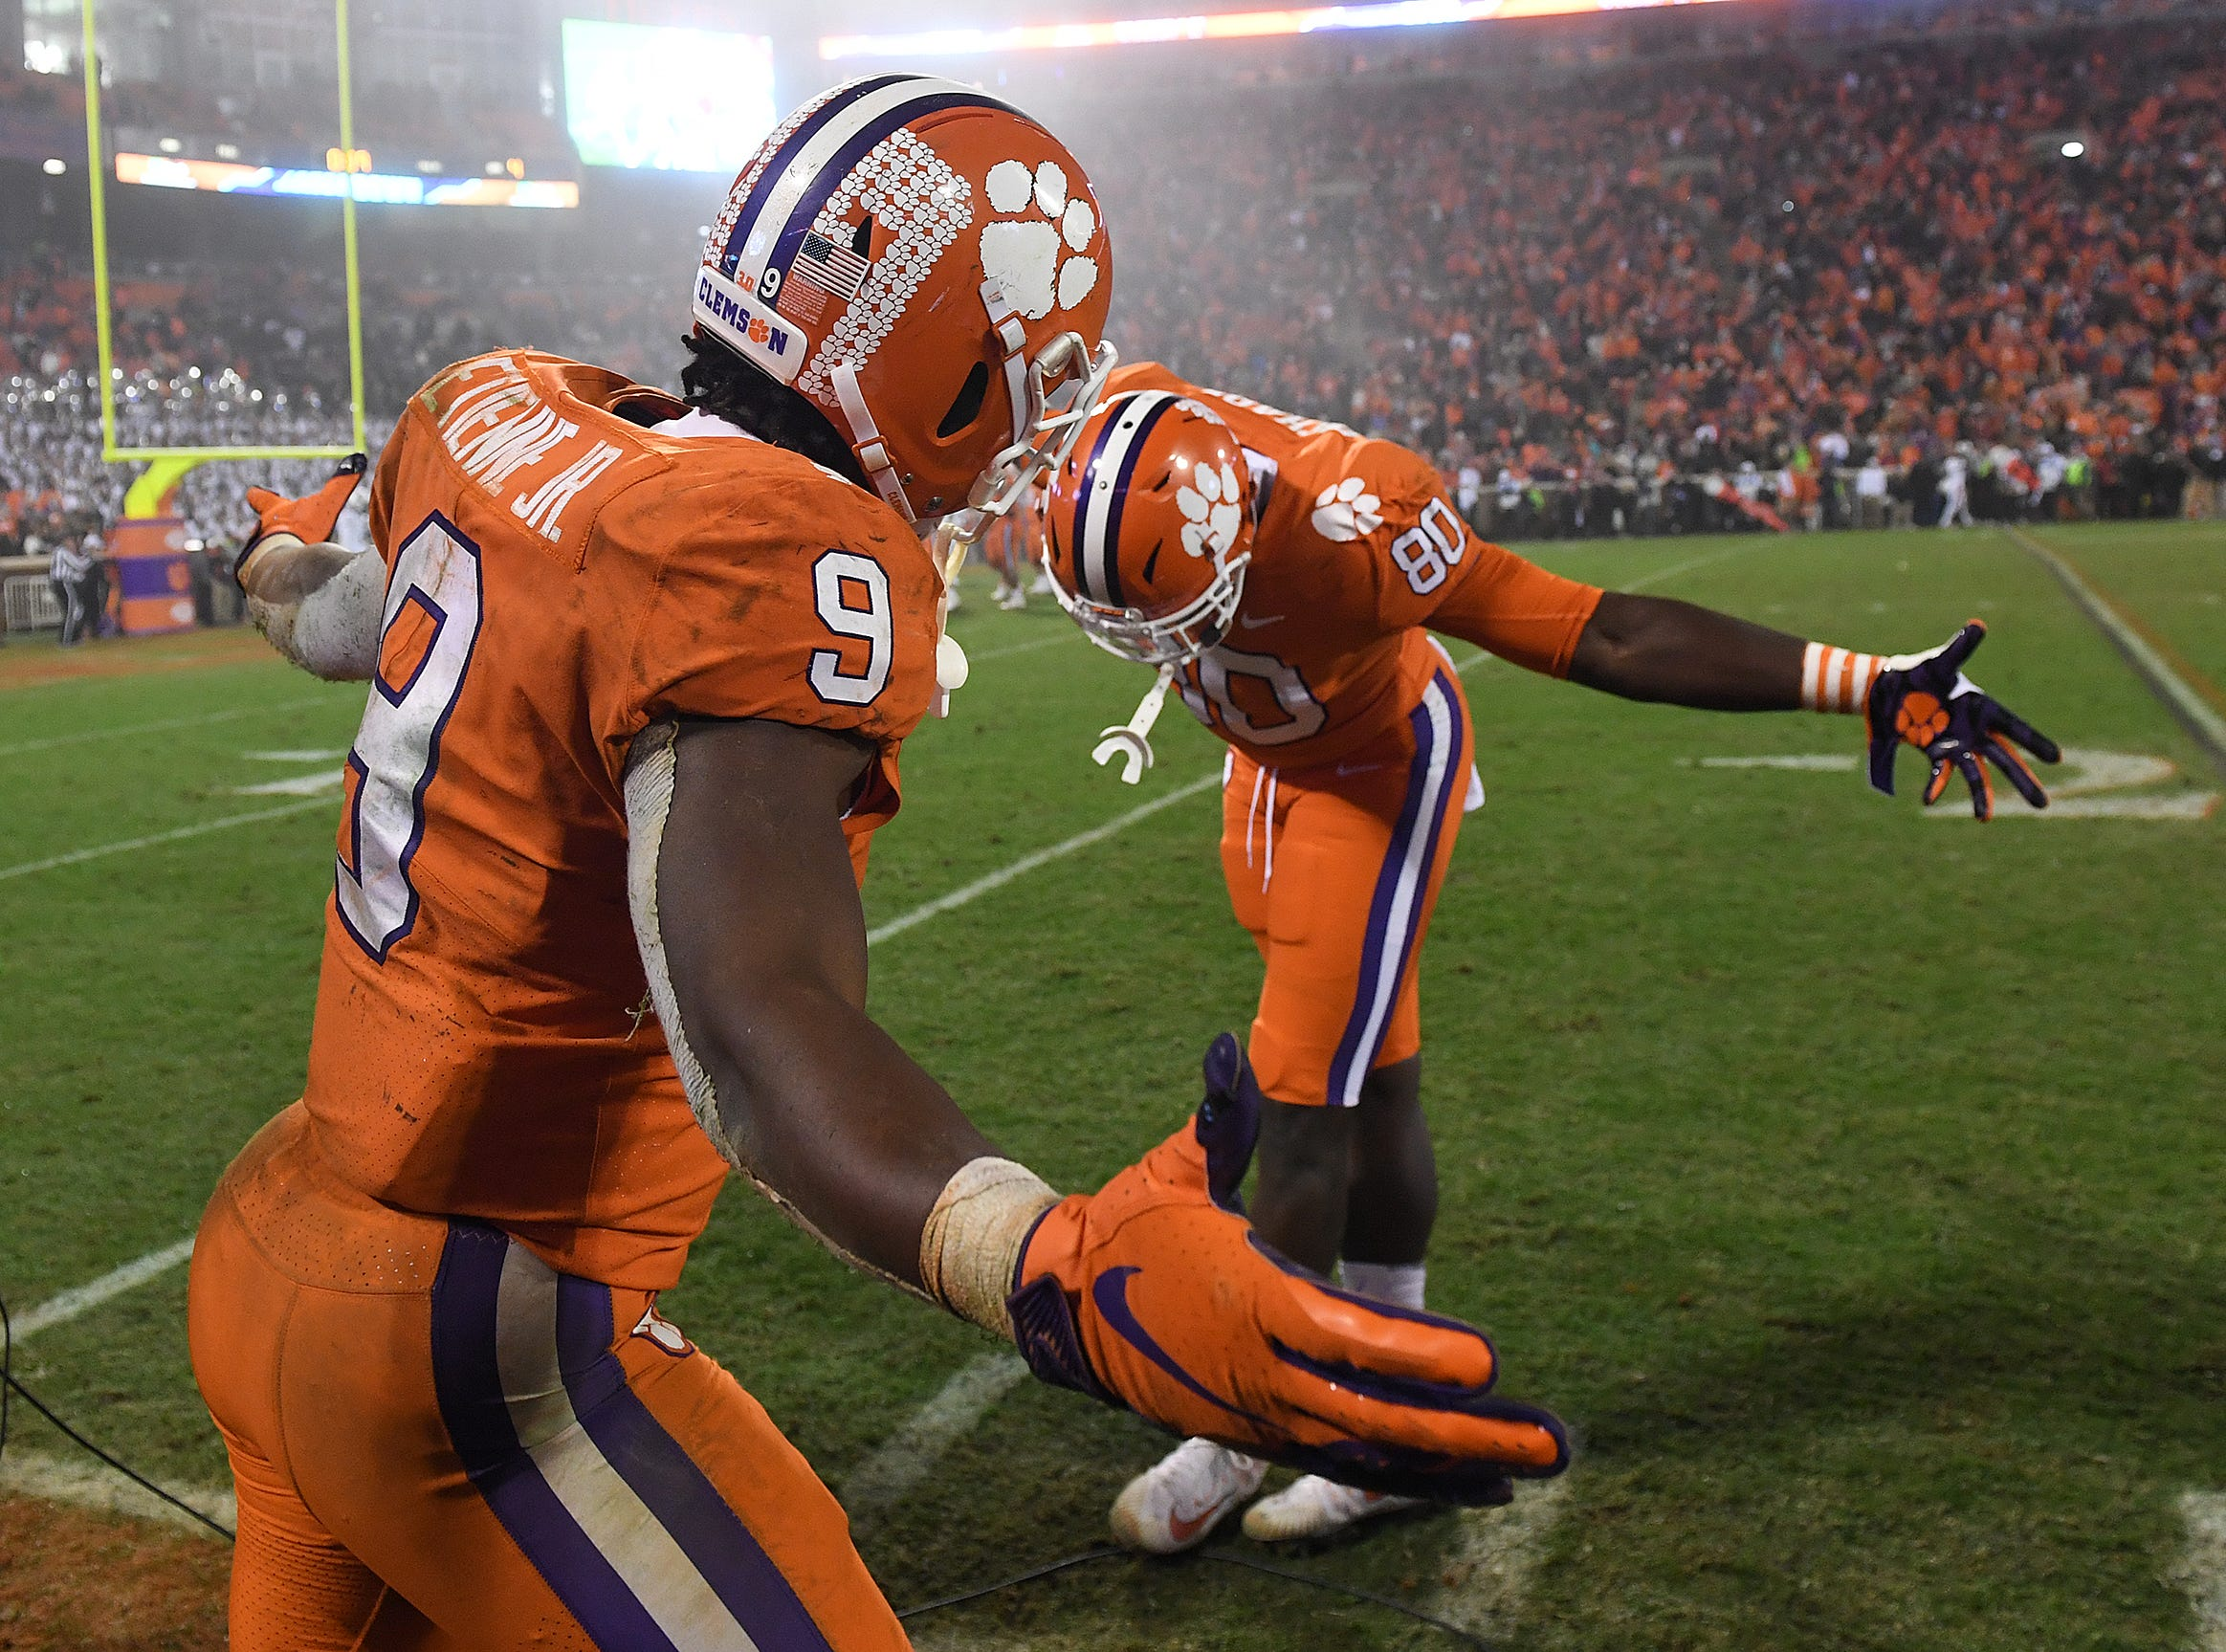 Clemson tight end Milan Richard (80) bows to running back Travis Etienne (9) after Etienne scored against South Carolina during the 4th quarter Saturday, November 24, 2018 at Clemson's Memorial Stadium.